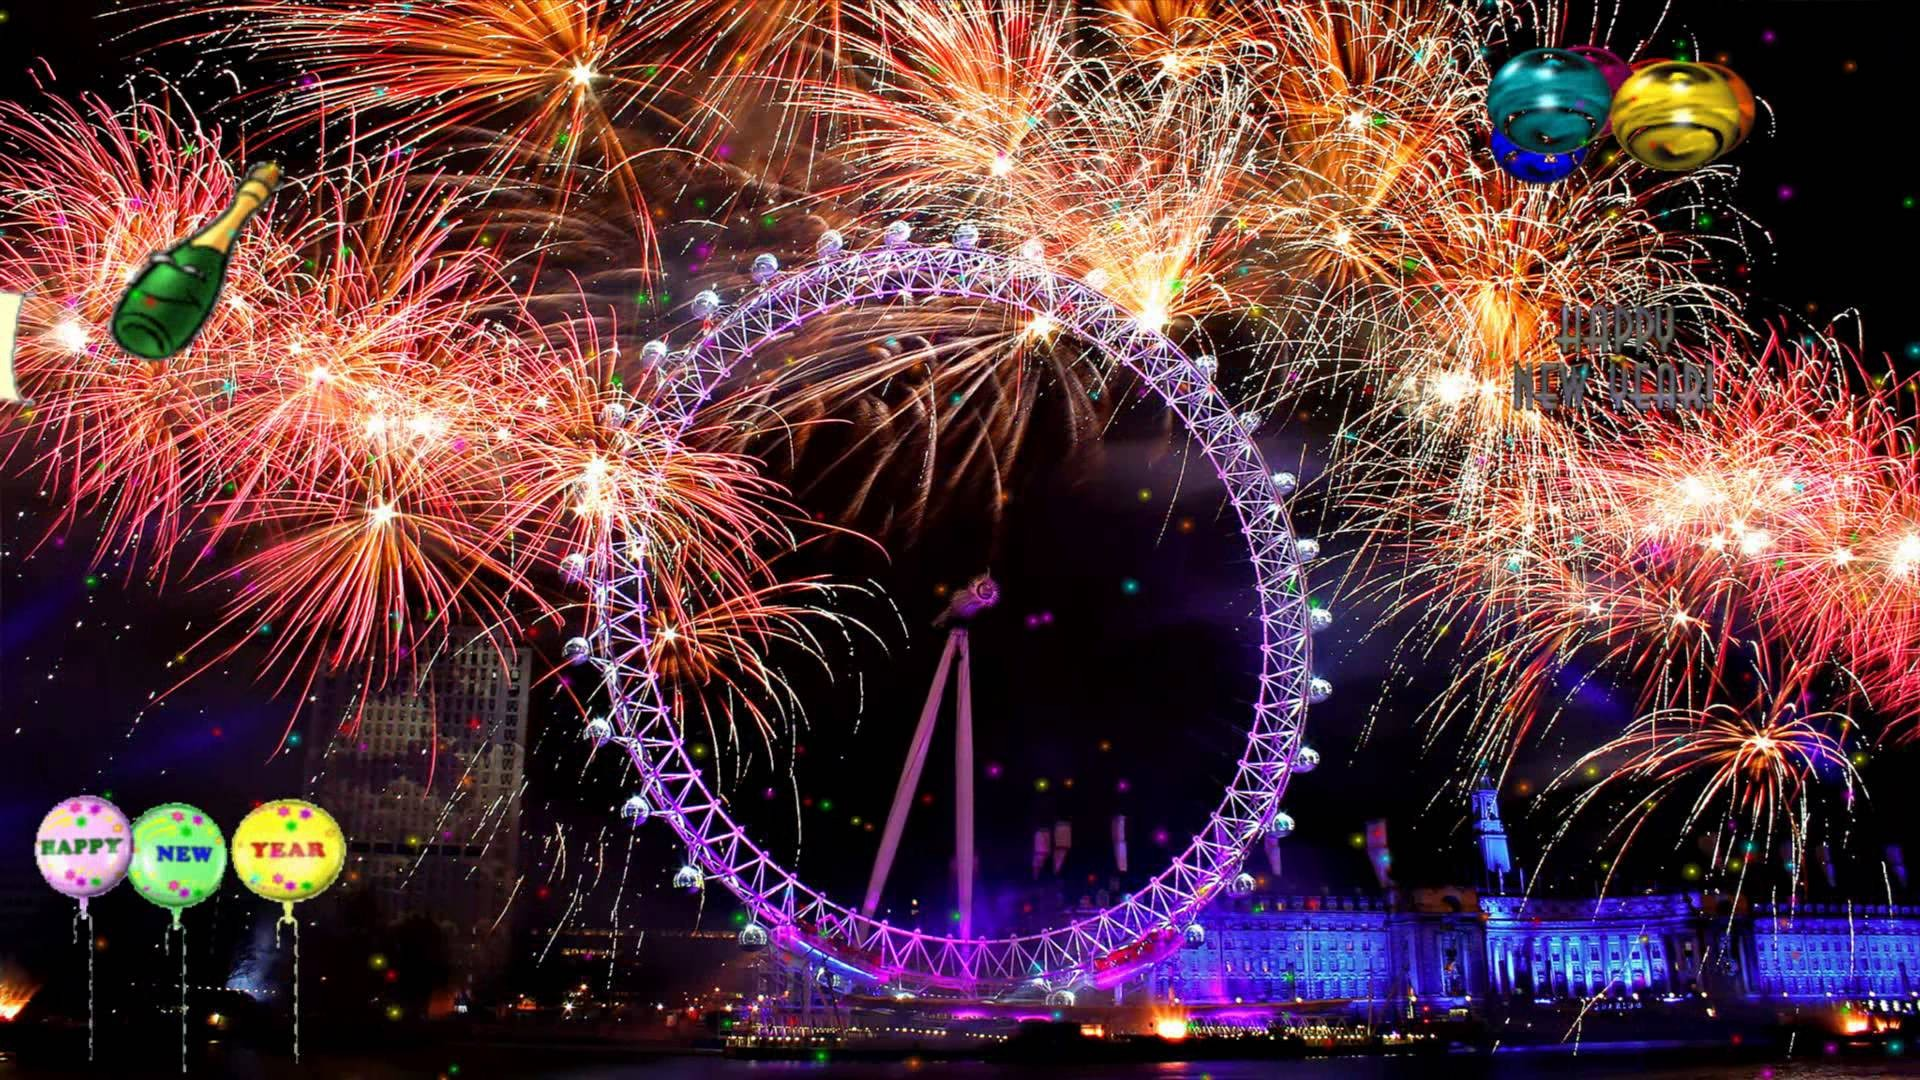 New Years wallpaper ·① Download free backgrounds for ...